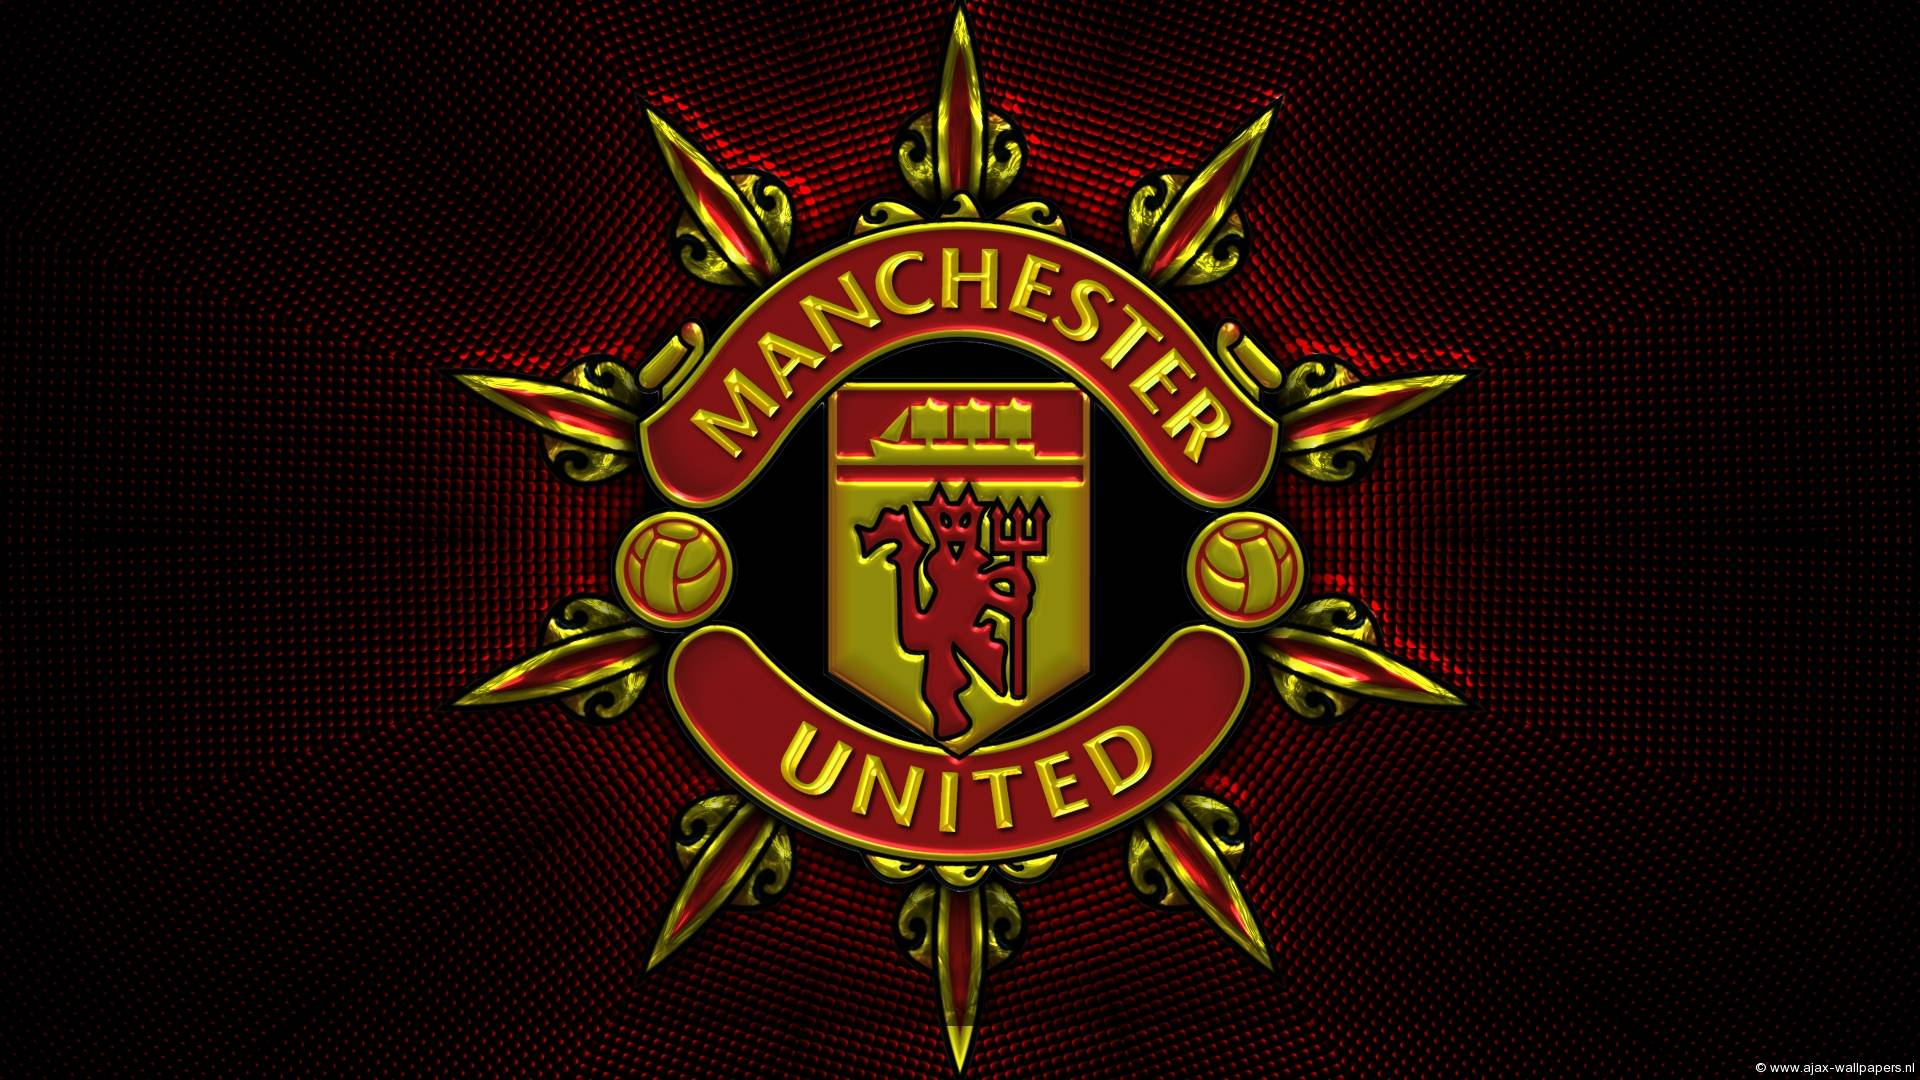 Hd wallpaper manchester united - Manchester United High Def Logo Wallpapers Wallpapers